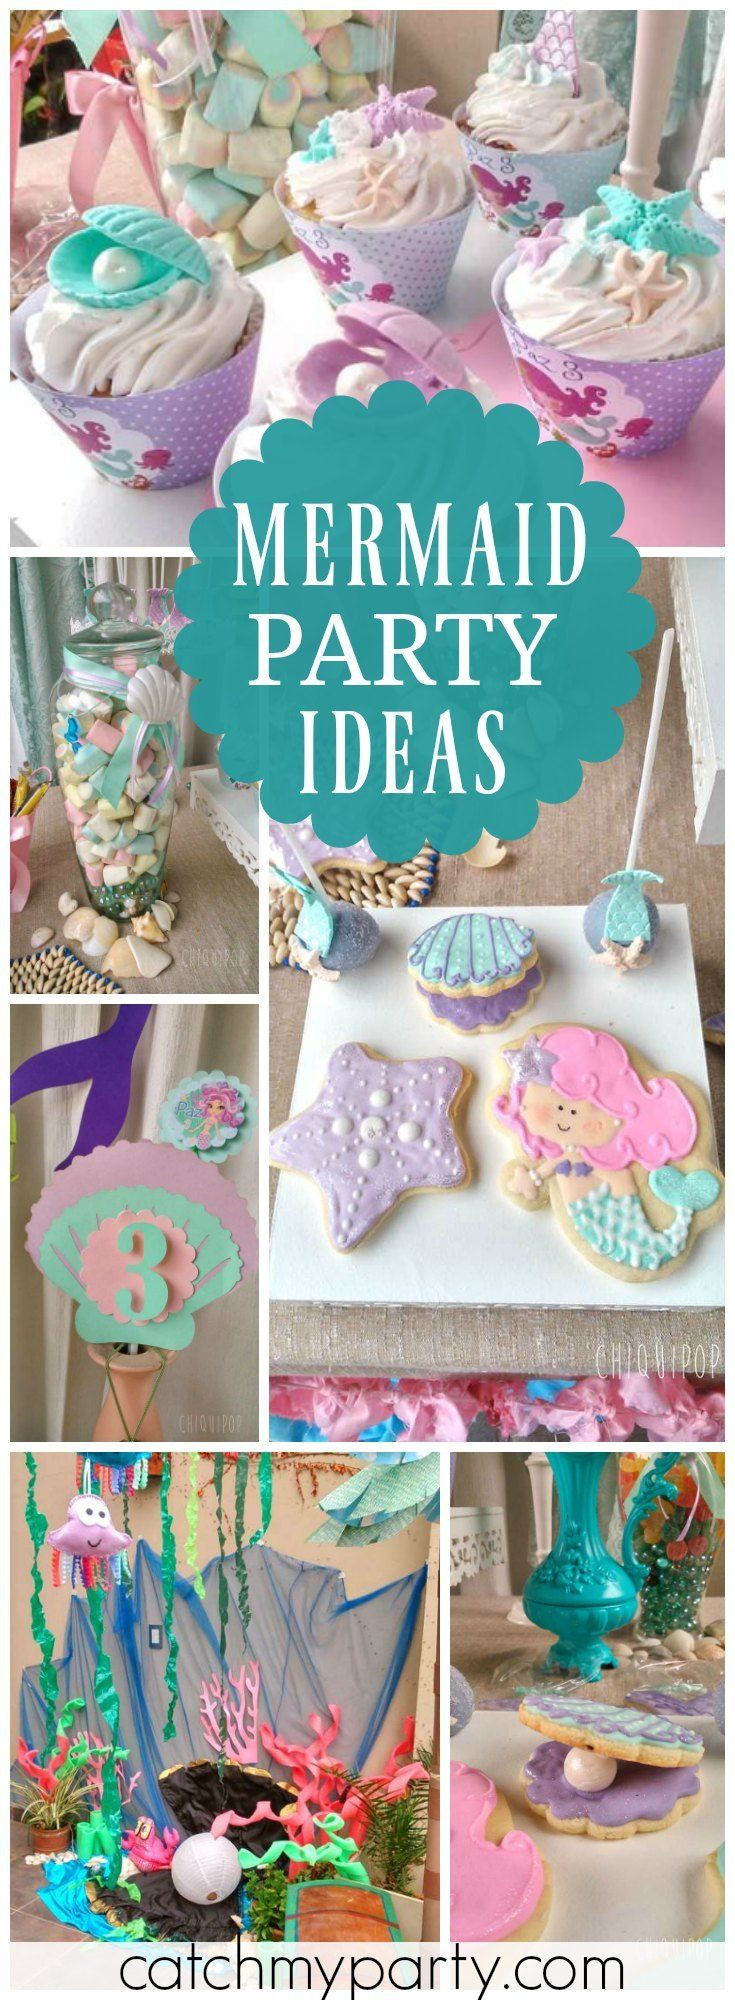 Mermaid Party Ideas Pinterest  1000 images about Mermaid Party Ideas on Pinterest